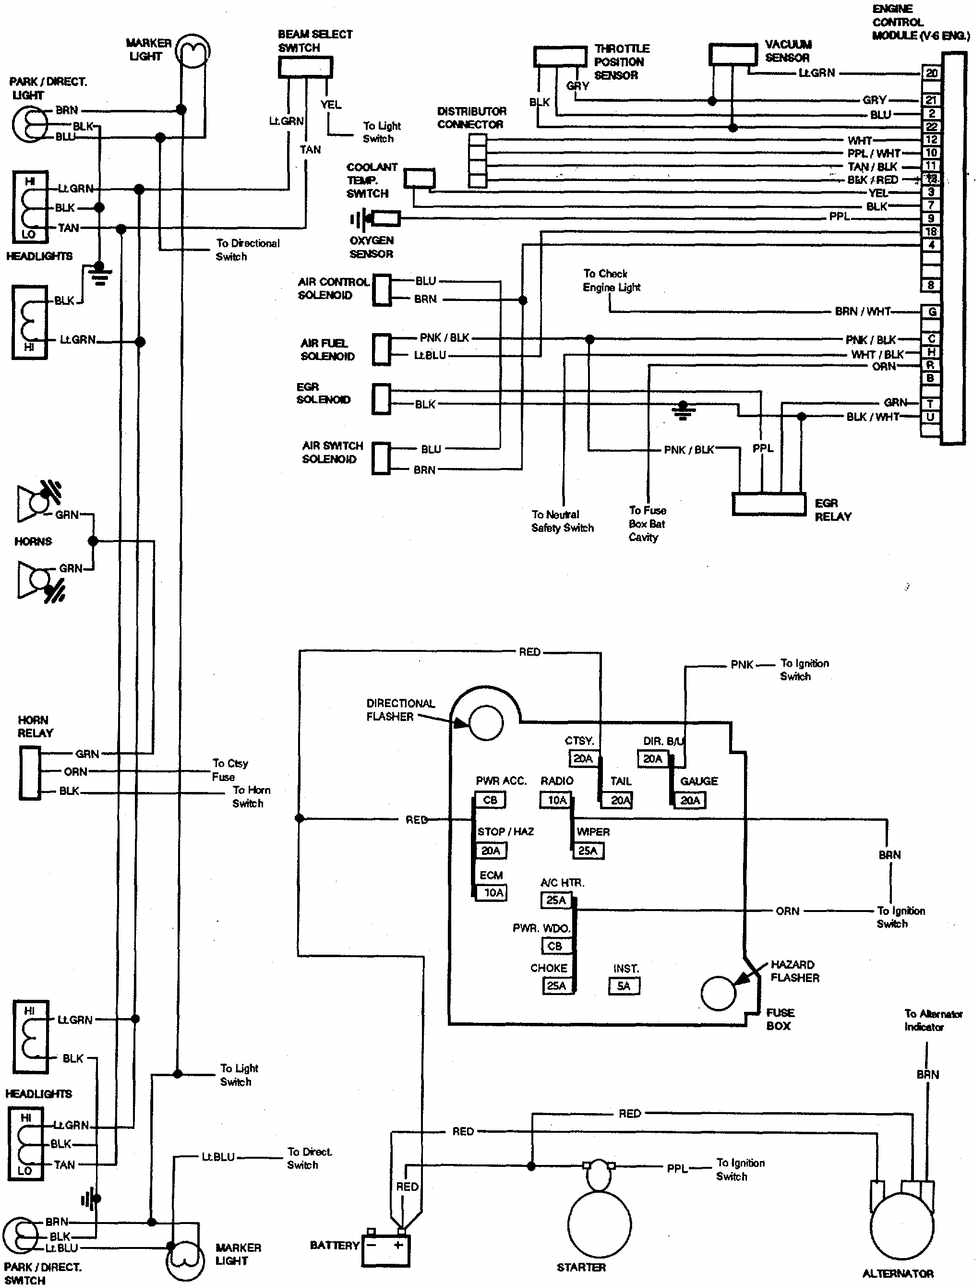 1970 Chevelle Ac Wiring Diagram in addition P 0900c1528007dbe6 in addition 810690 66 Parking Brake Cable 64 Fairlane Rear further Vemp 0212 Corvette Vacuum Systems Guide as well 614297 Pertronix Install Got Some Questions Need Help. on 1971 chevy nova wiring diagram